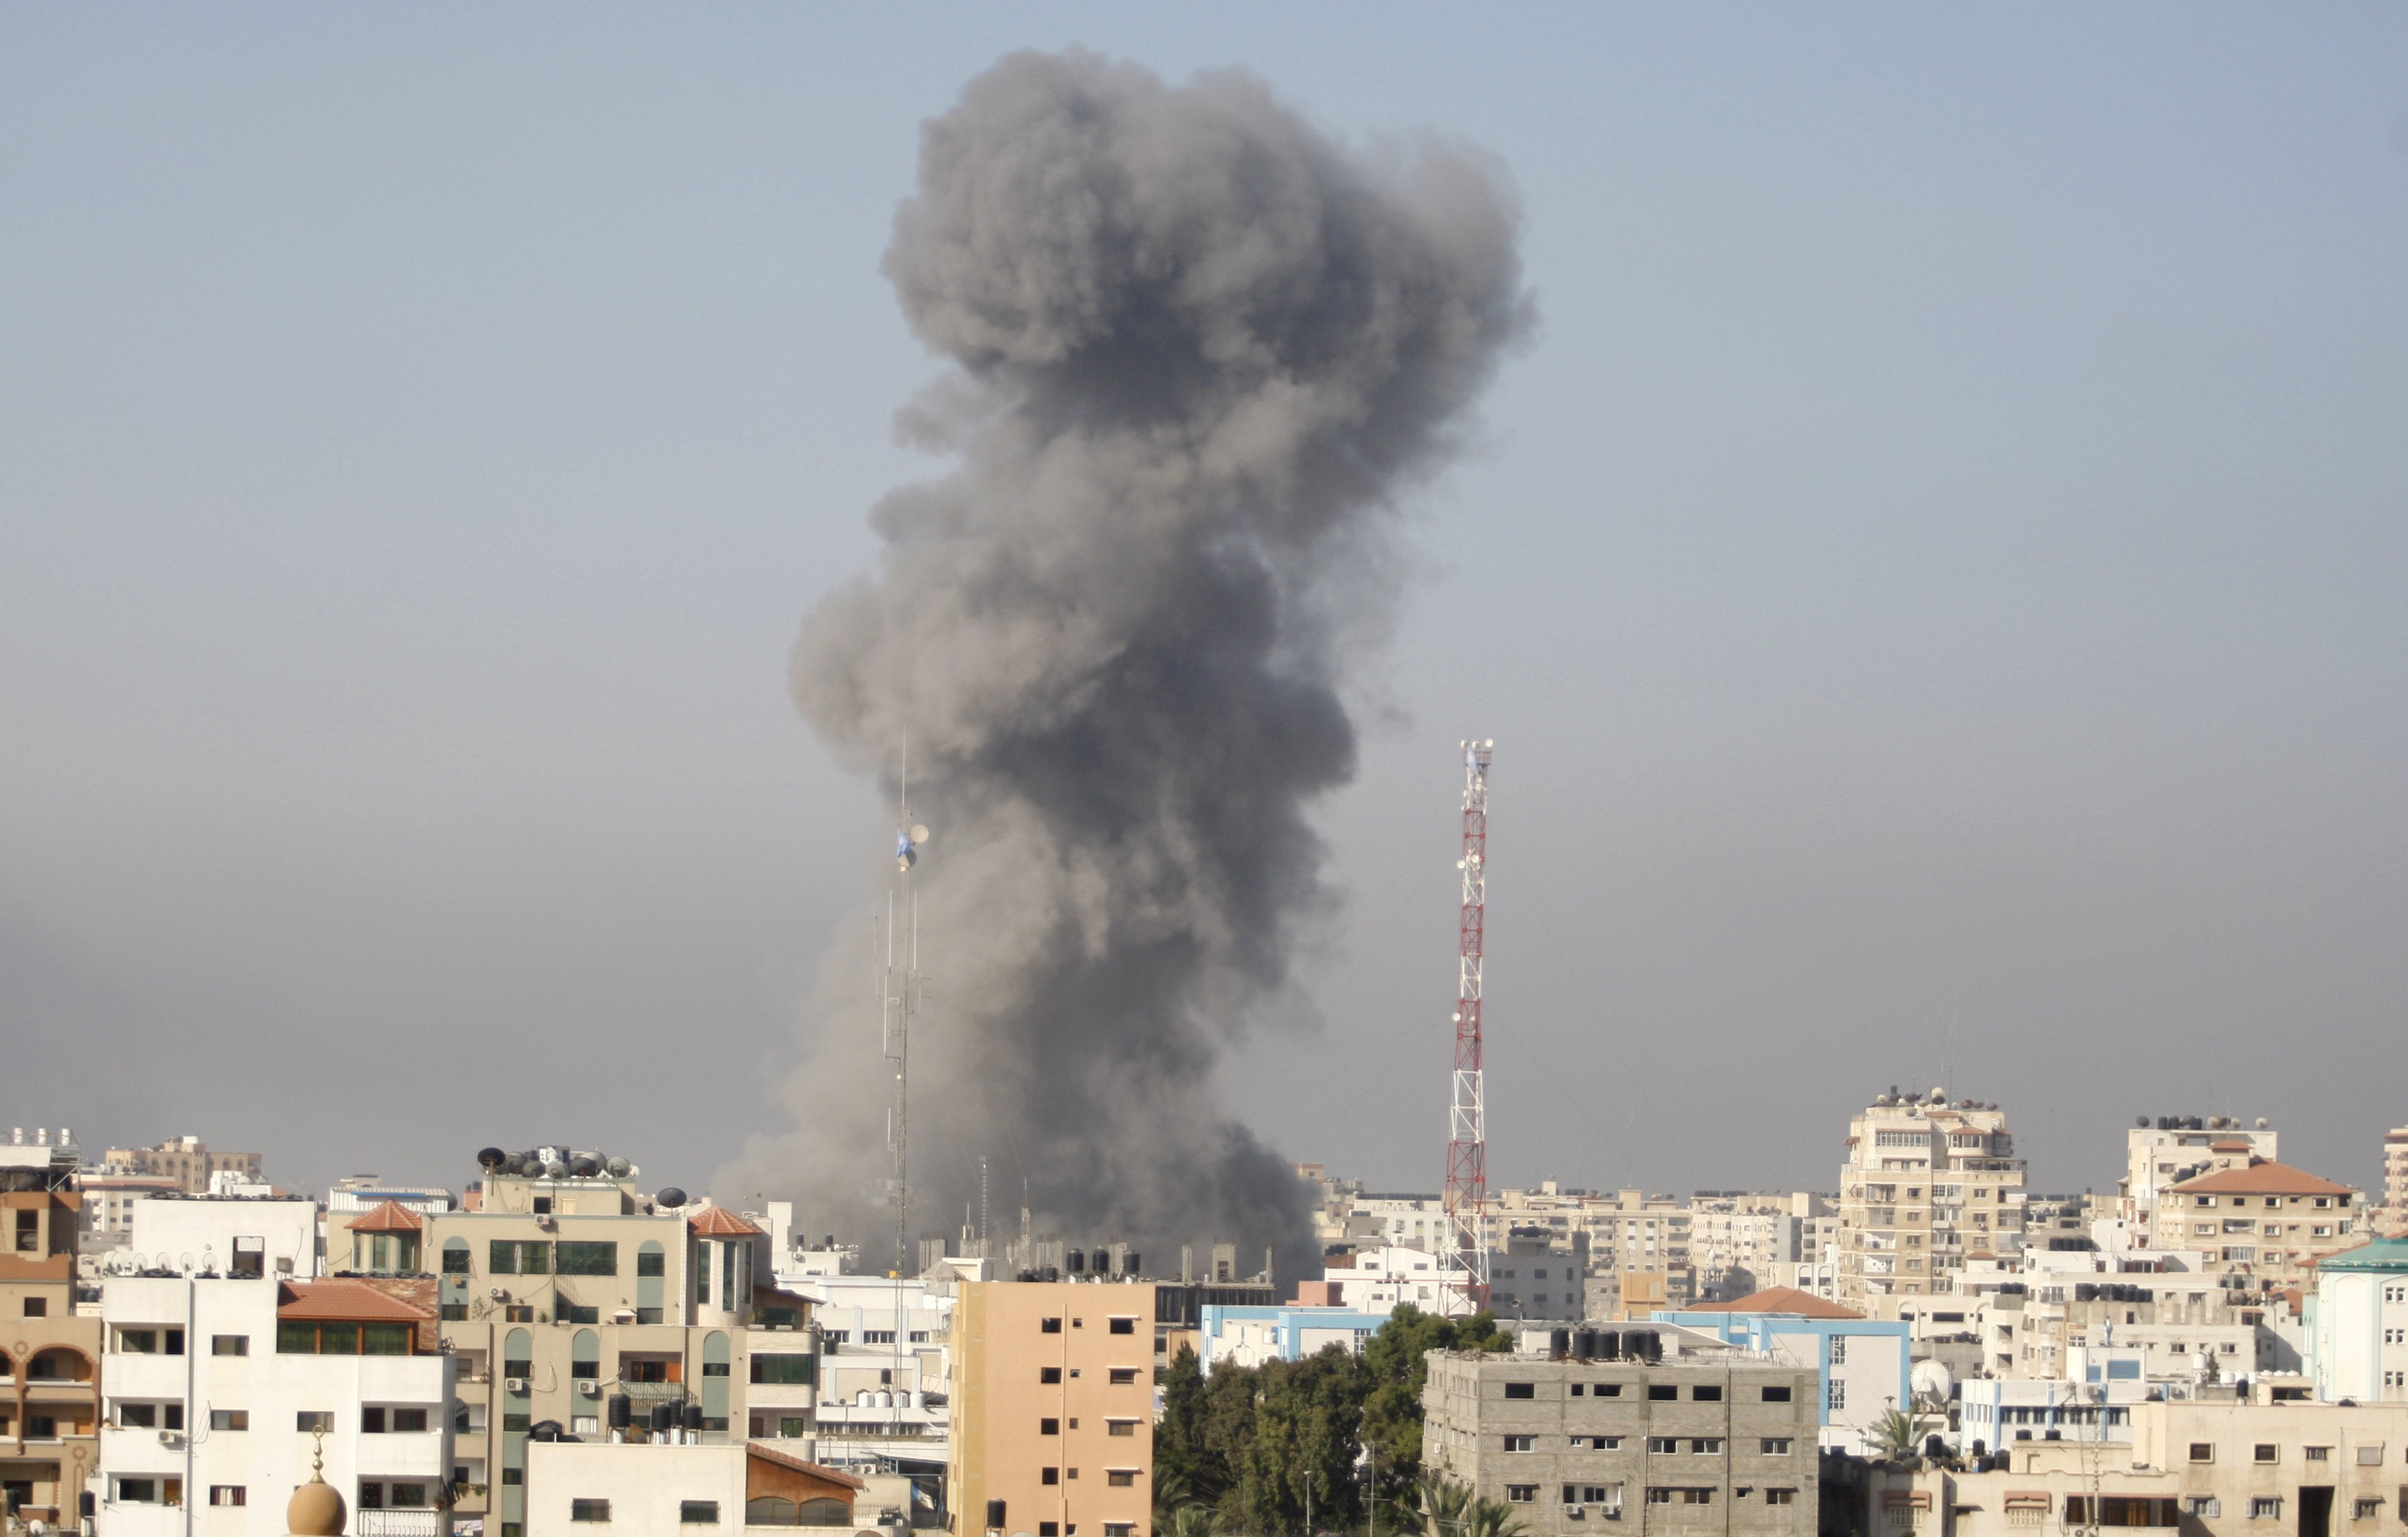 Smoke rises following what witnesses said was an Israeli air strike in Gaza City July 30, 2014. Israeli fire killed at least 43 Palestinians in the Gaza Strip early on Wednesday as the Jewish state said it targeted Islamist militants at dozens of sites across the coastal enclave, while Egyptian mediators prepared a revised ceasefire proposal. Photo: Reuters